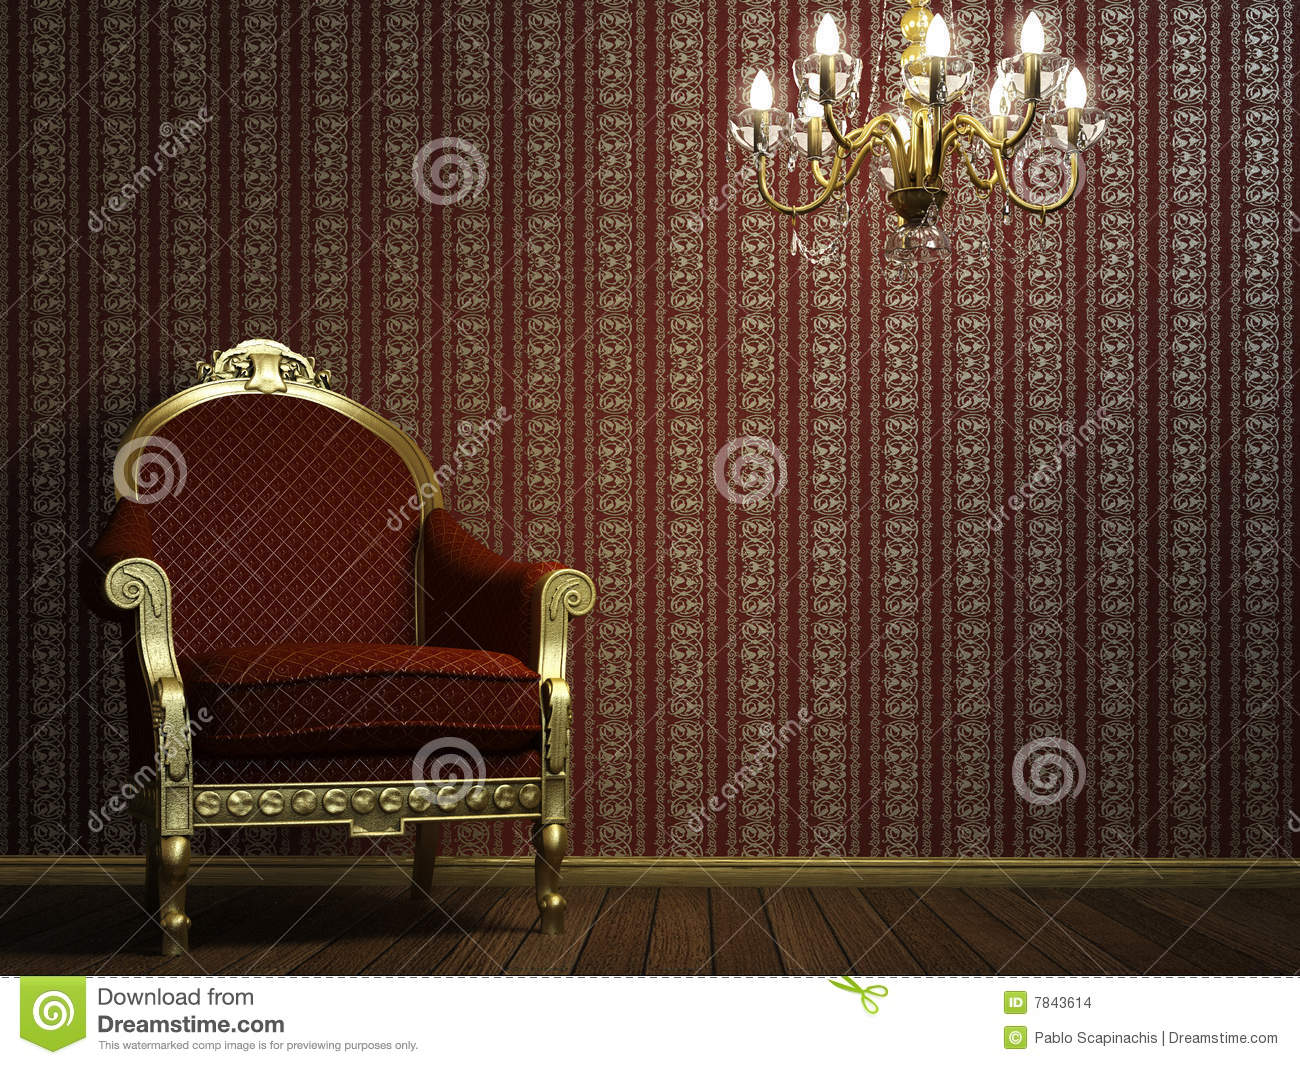 Classic armchair with lamp and golden details